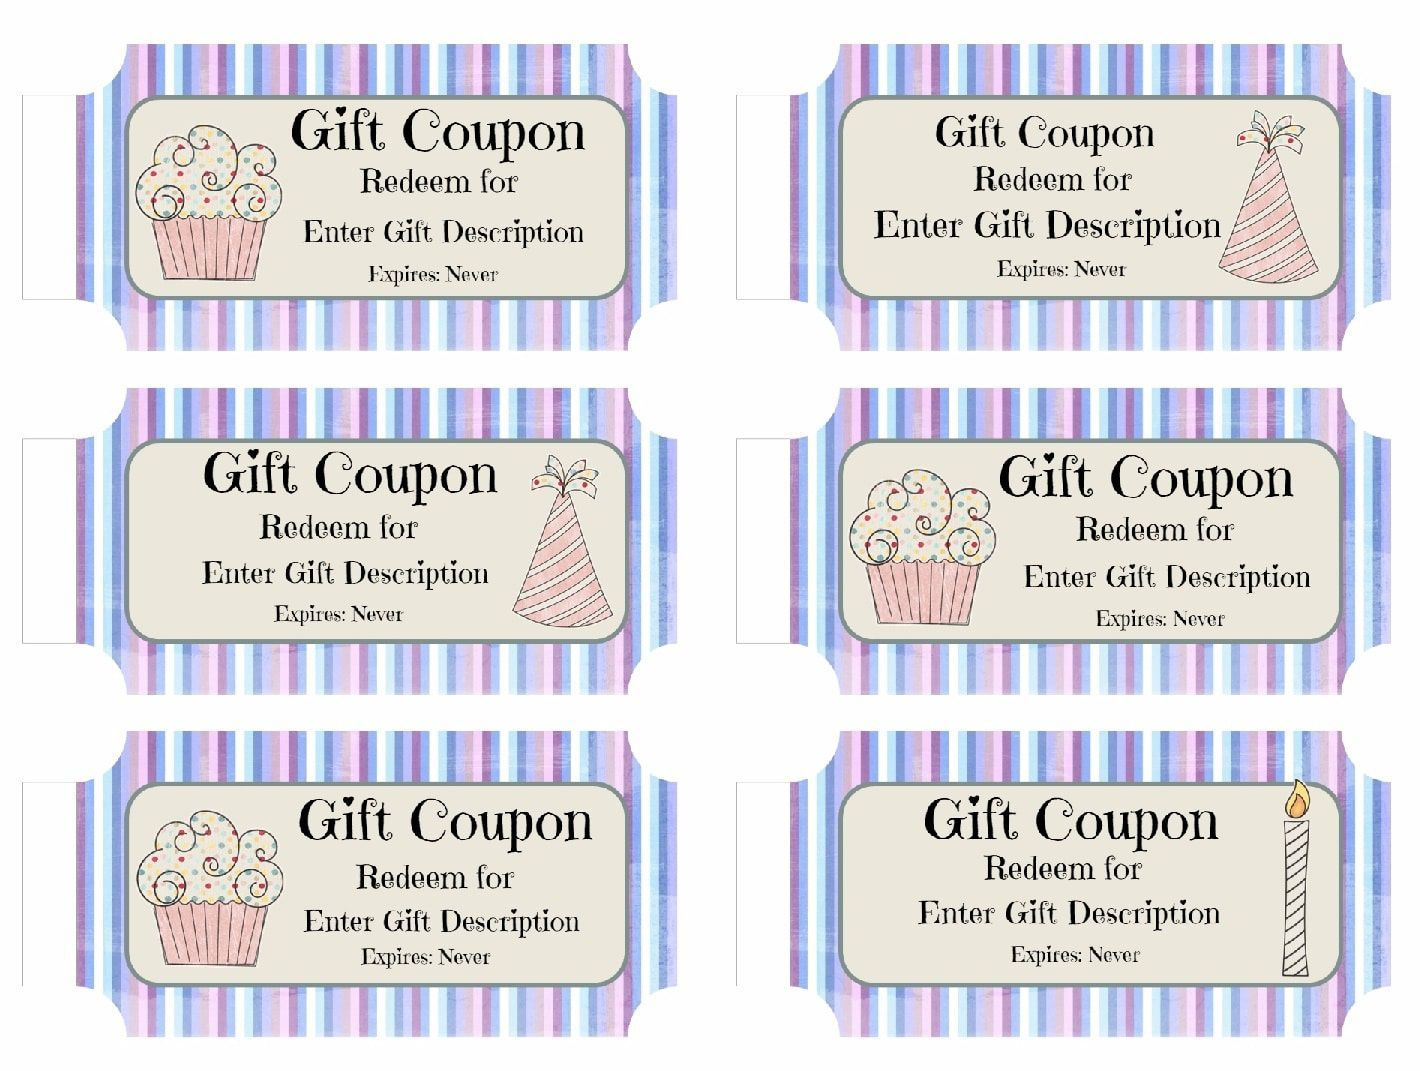 008 Awesome Free Printable Birthday Gift Voucher Template High Def Full